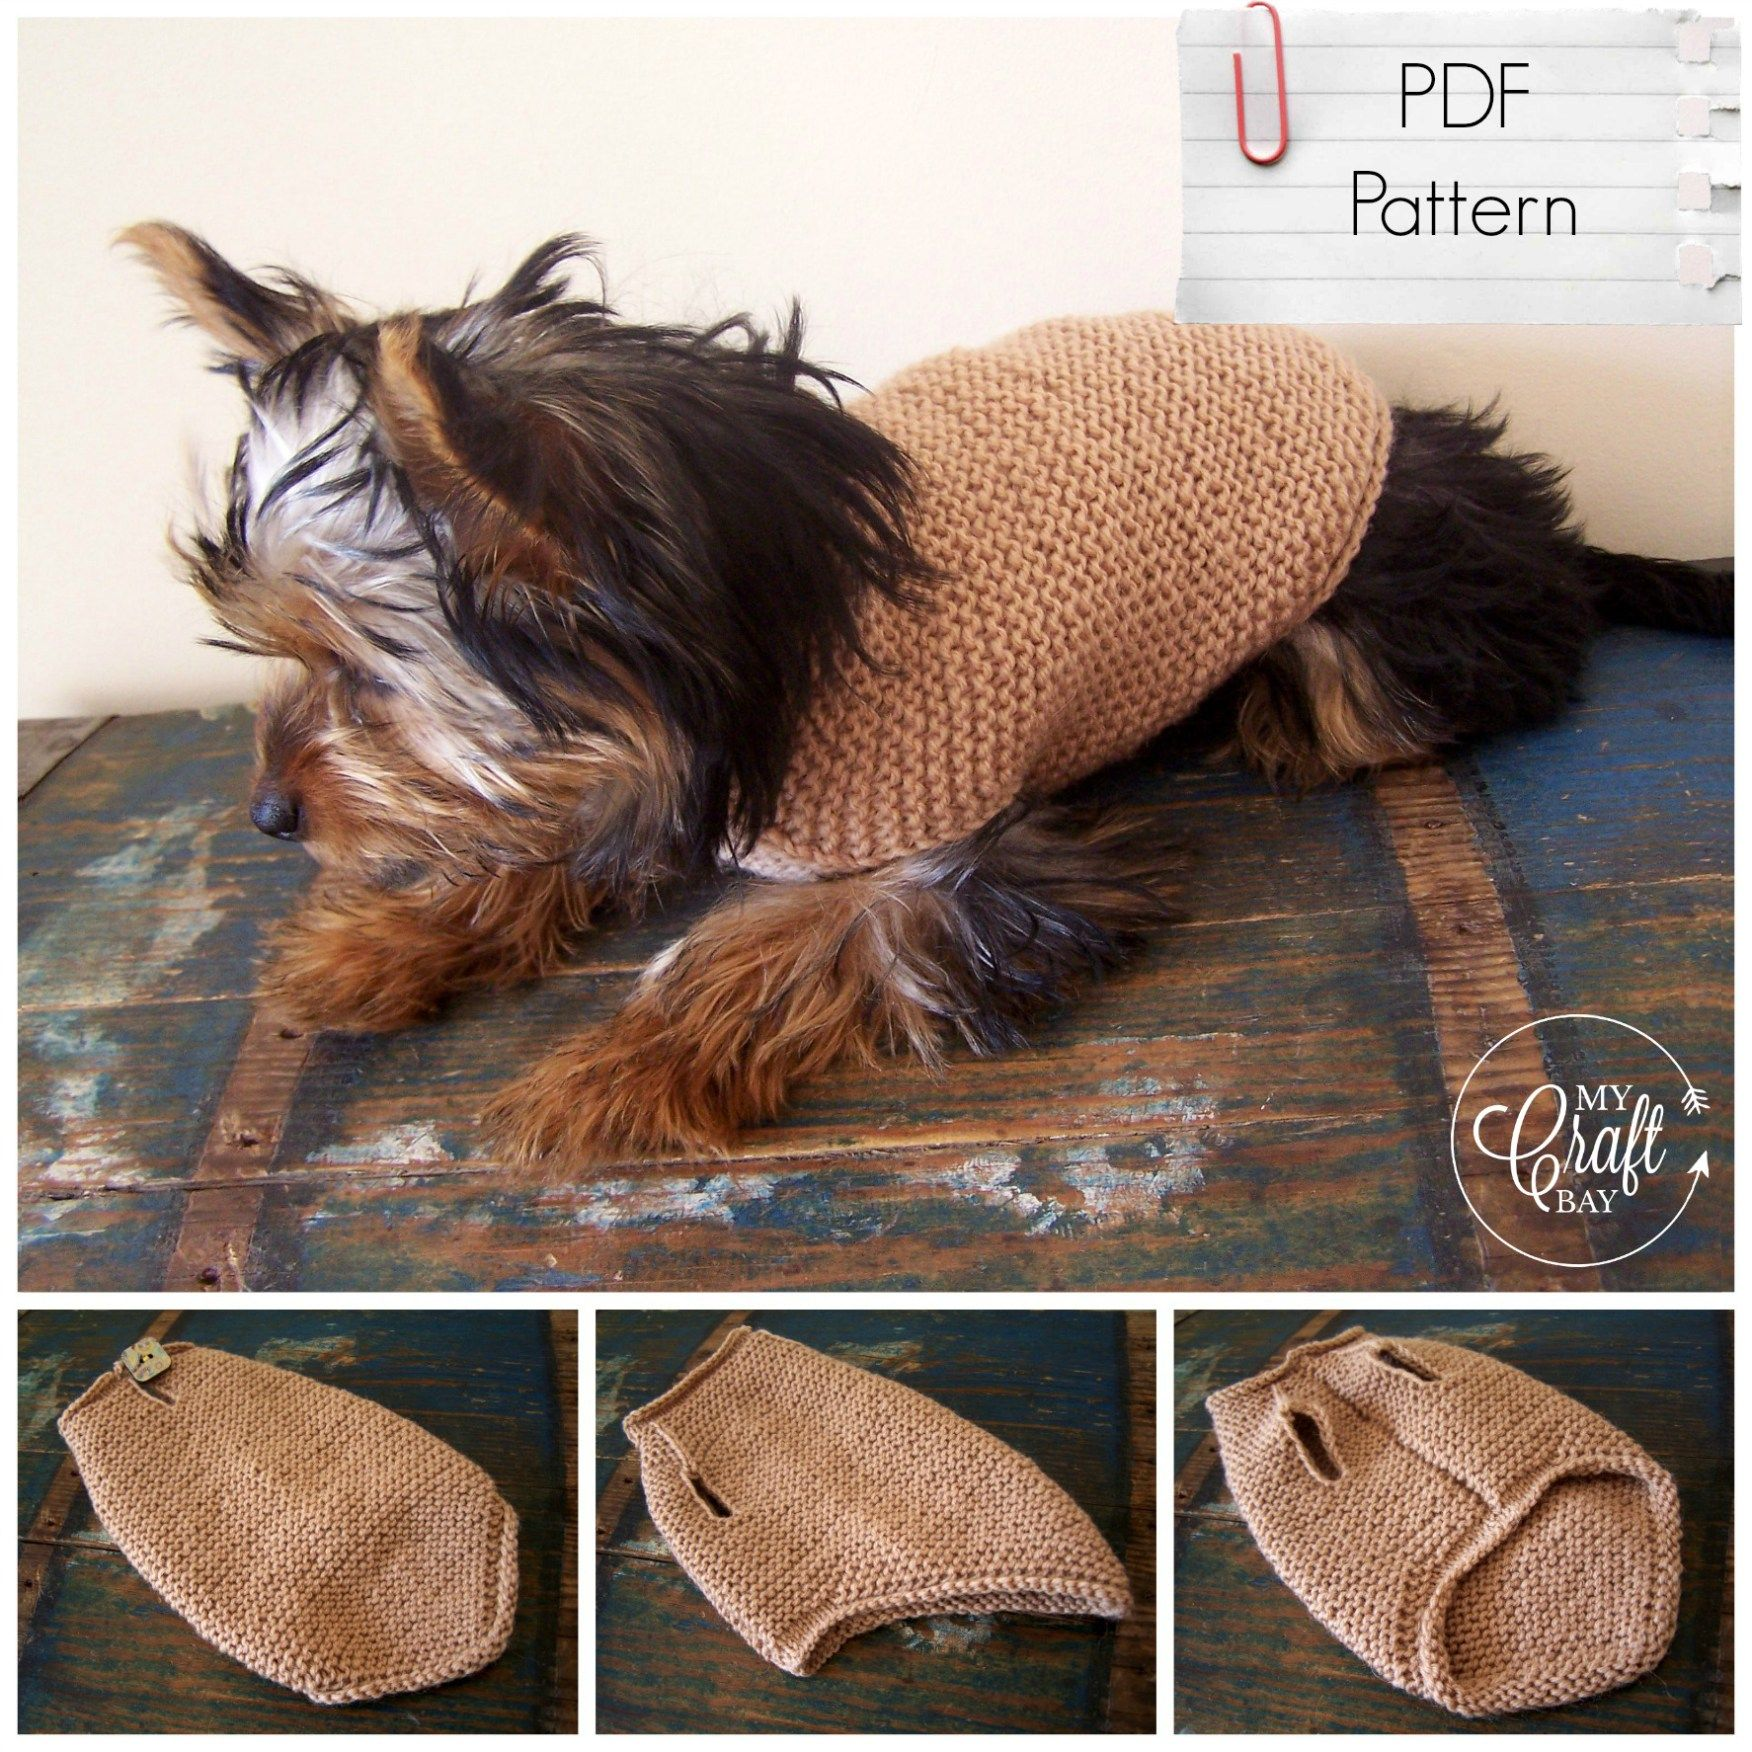 knitted dog sweater PDF pattern | dog sweaters | Pinterest | Pdf ...